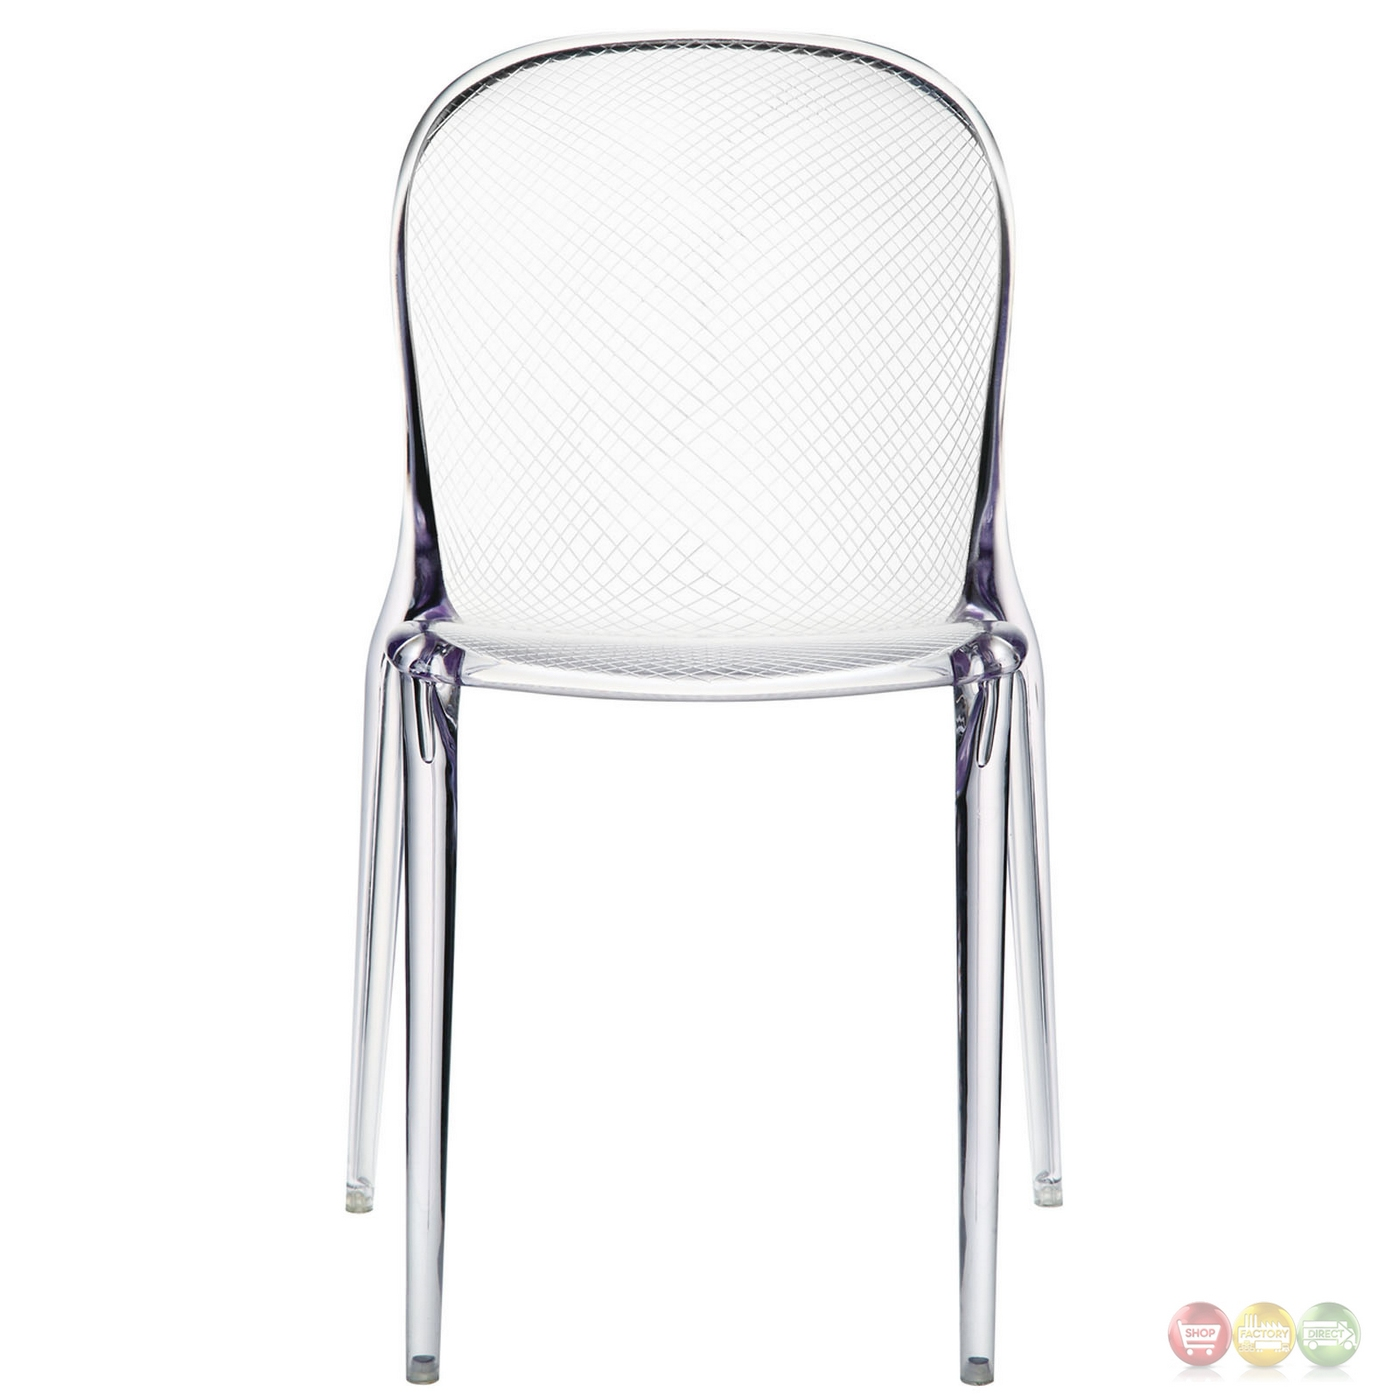 Clear Acrylic Chair Scape Contemporary Transparent Acrylic Dining Side Chair